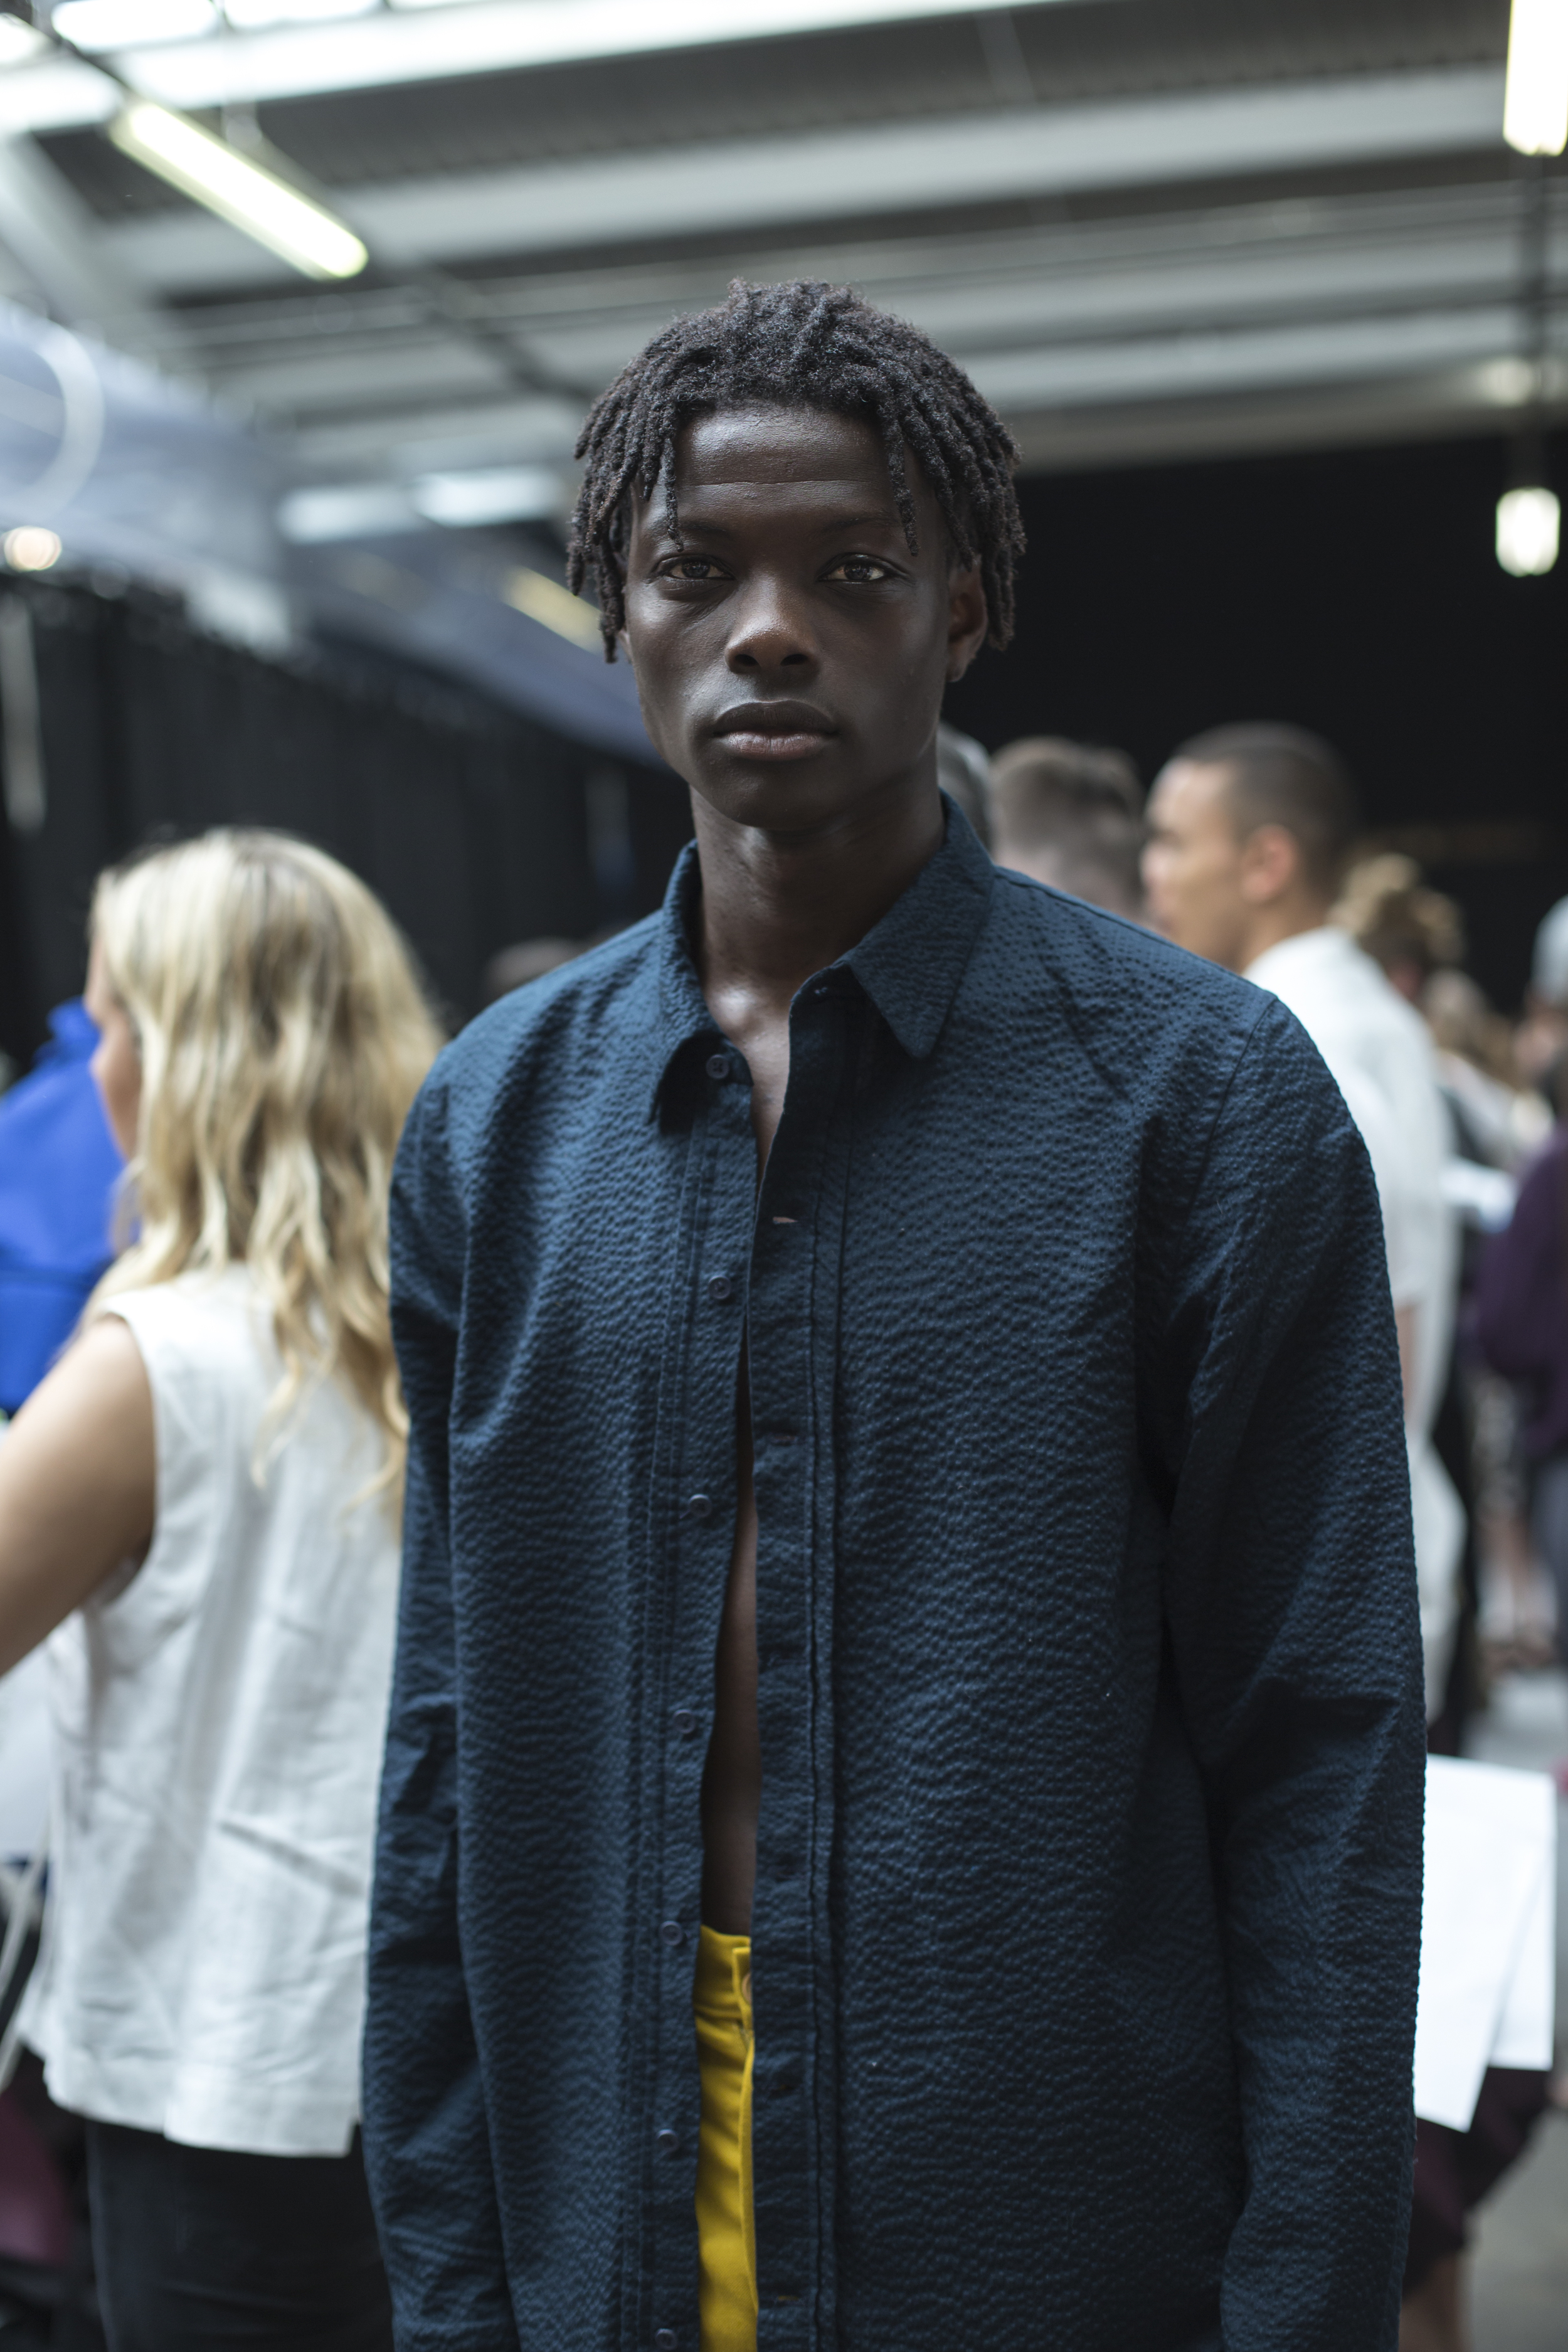 Backstage_University_Sulford_Man_GFW_LaurenMustoe_-8.jpg